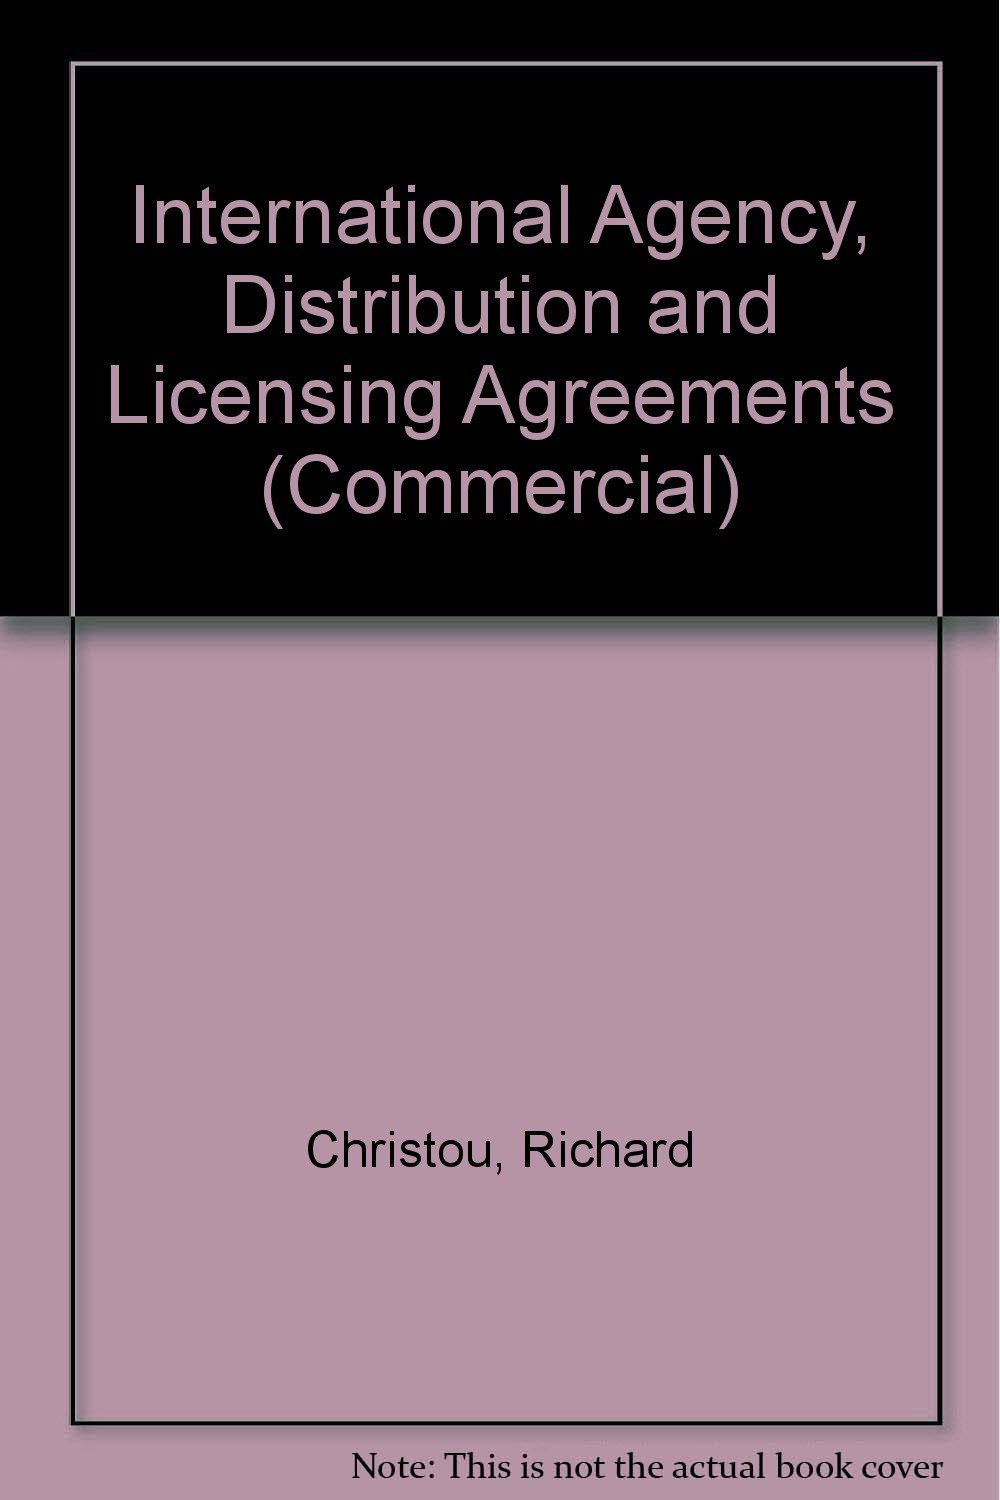 International Agency Distribution And Licensing Agreements Richard